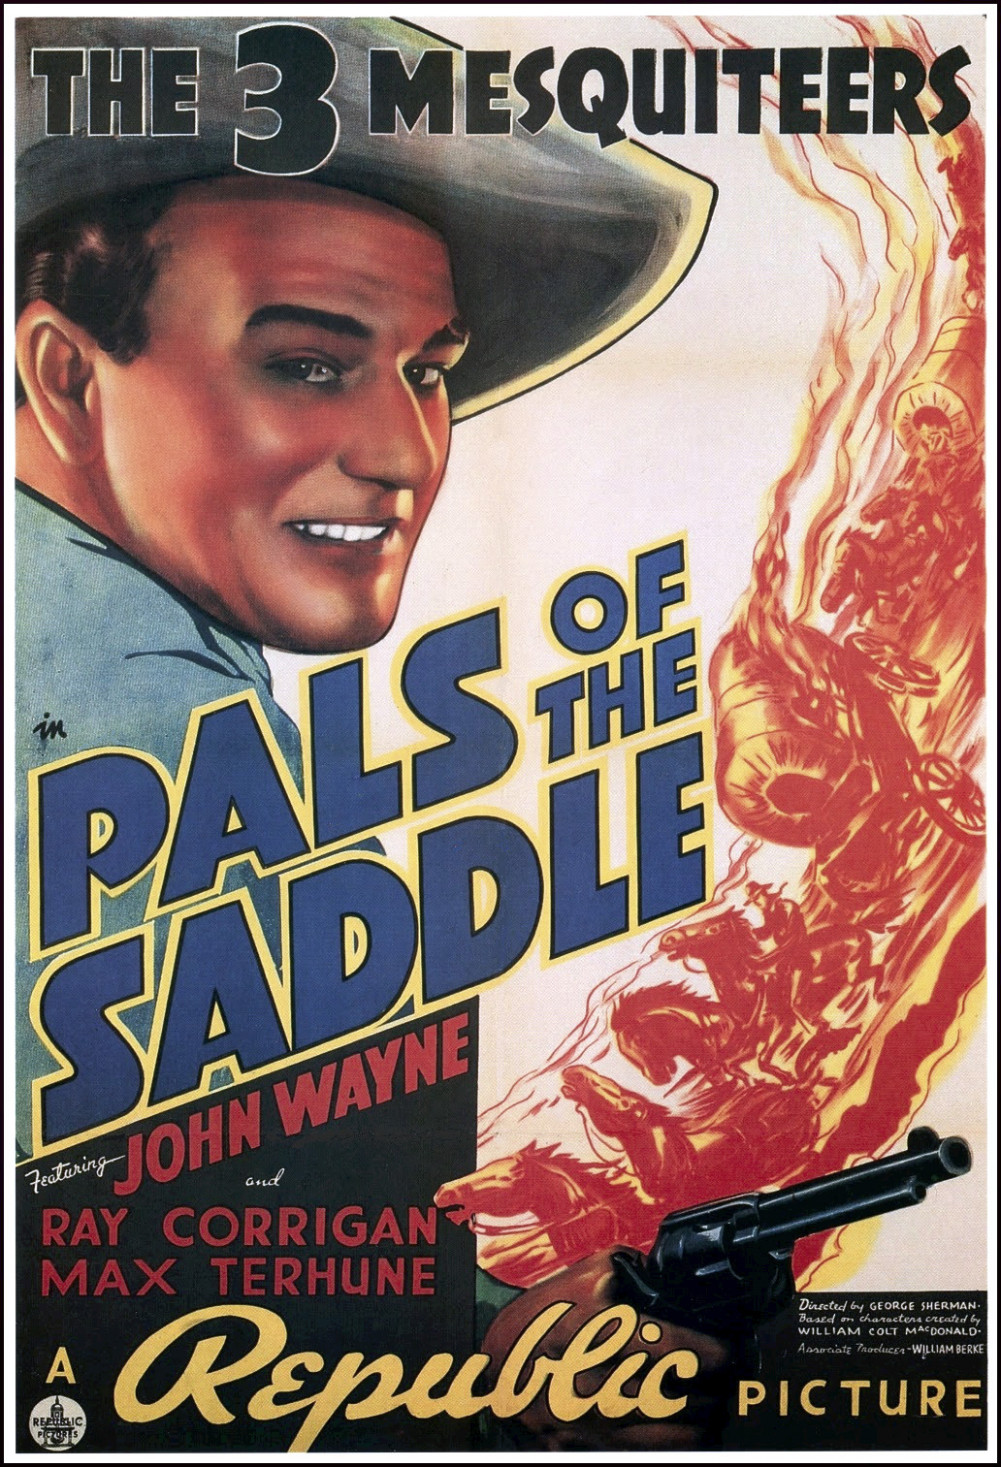 Pals of the Saddle - Wikipedia